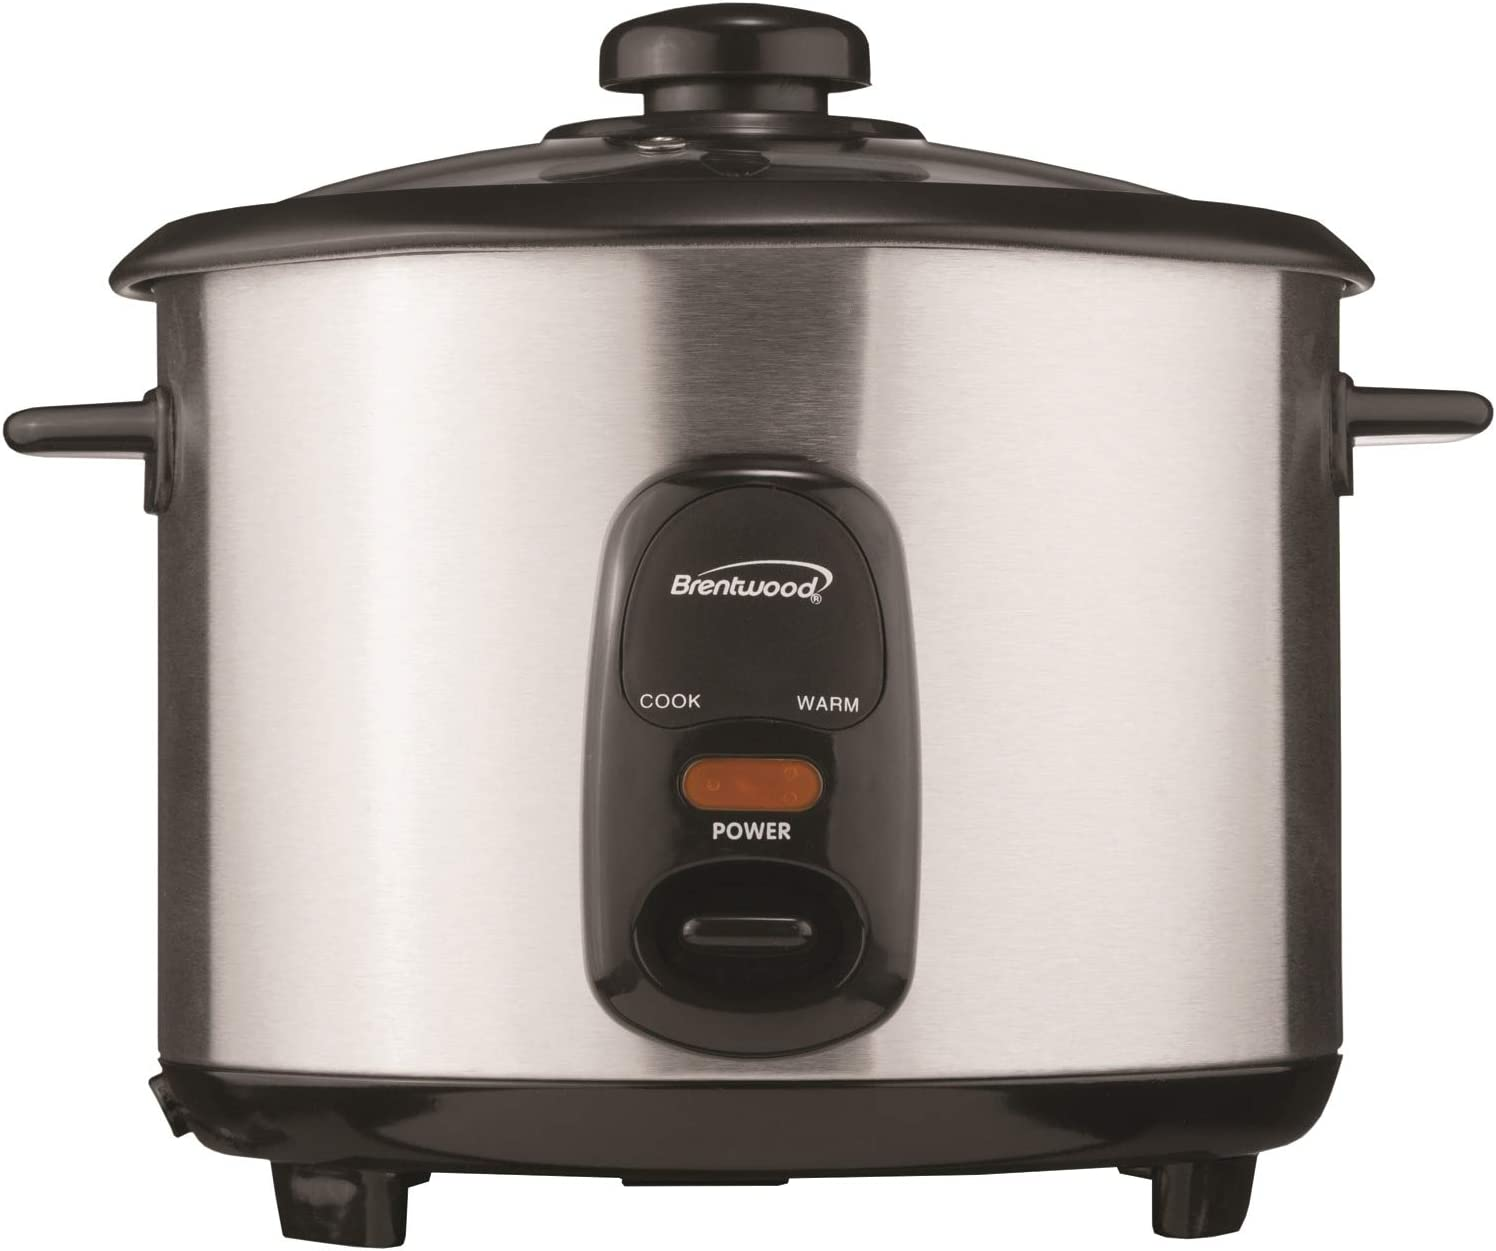 Brentwood Rice Cooker, 8-Cup, Stainless Steel,TS-15,2